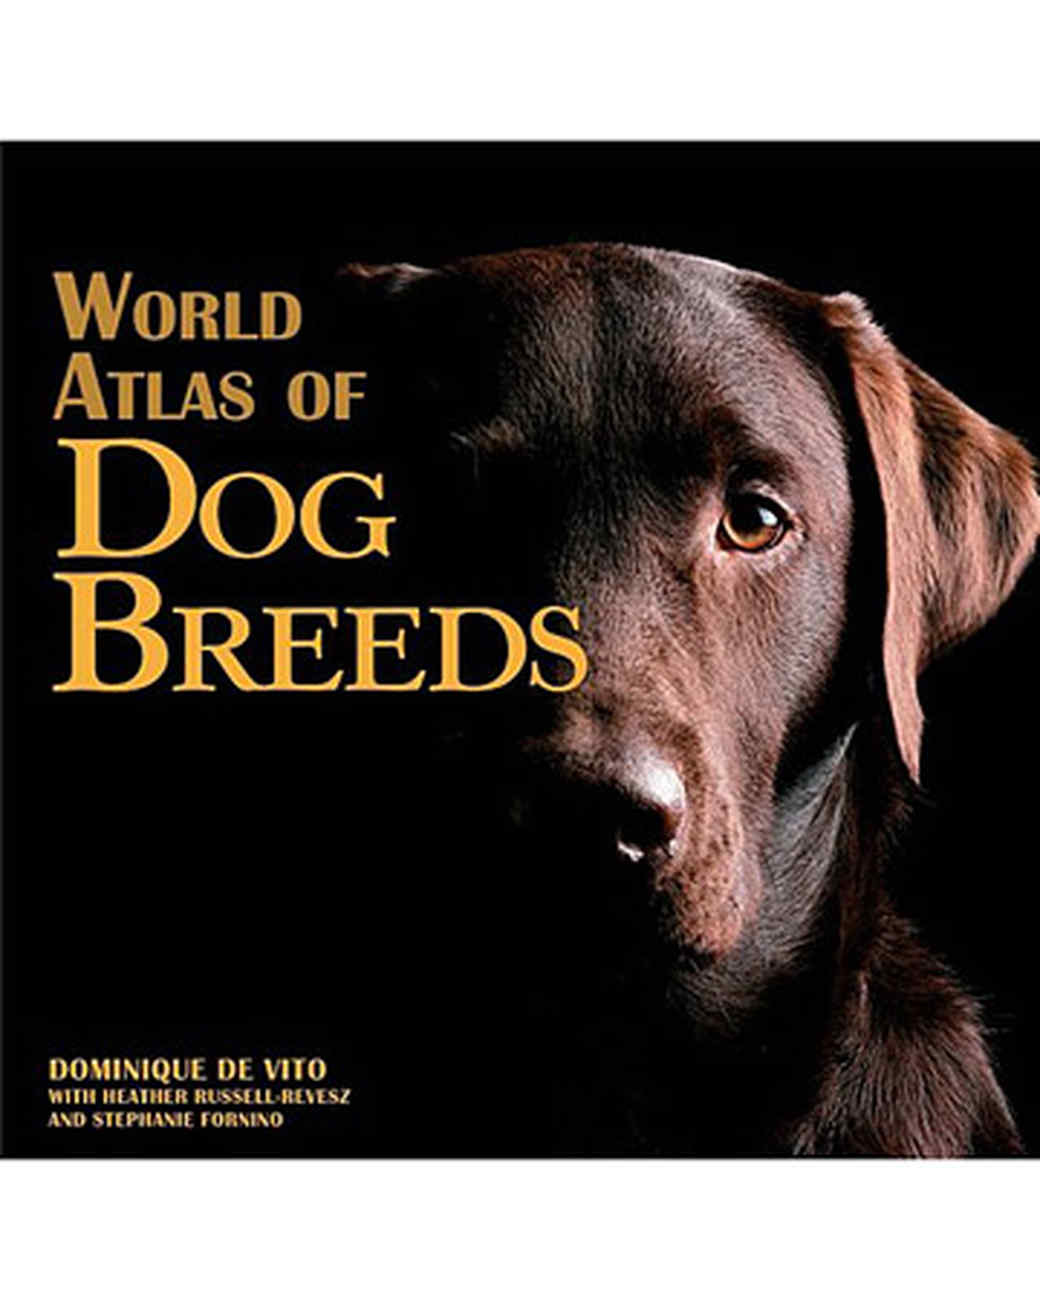 pets_dogs_coverimage.jpg